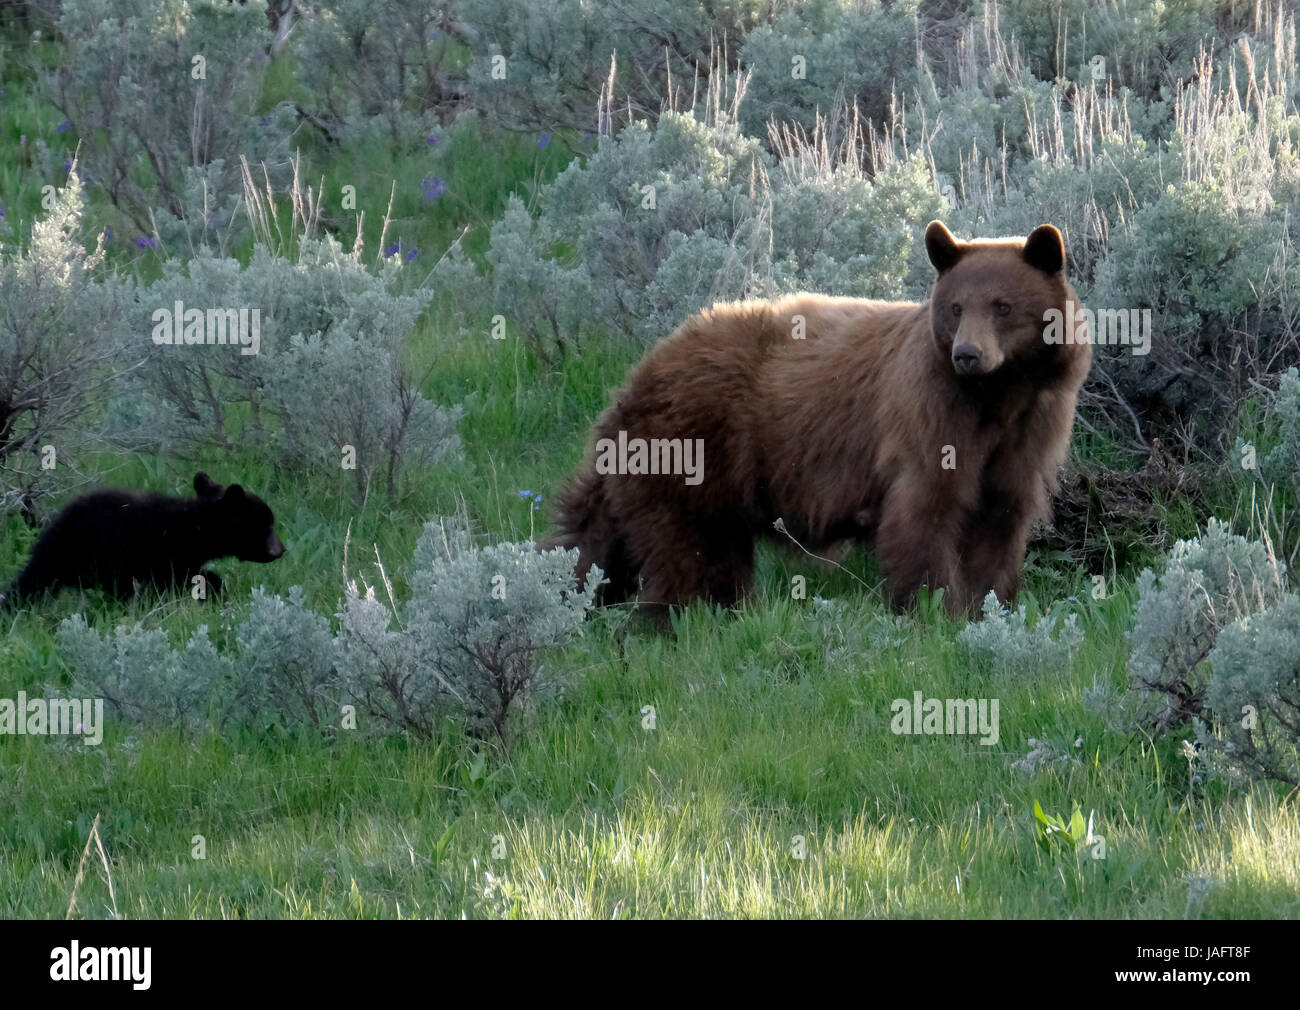 American Black Bear Sow femmina con baby cubs nel Parco Nazionale di Yellowstone, Wyoming Immagini Stock